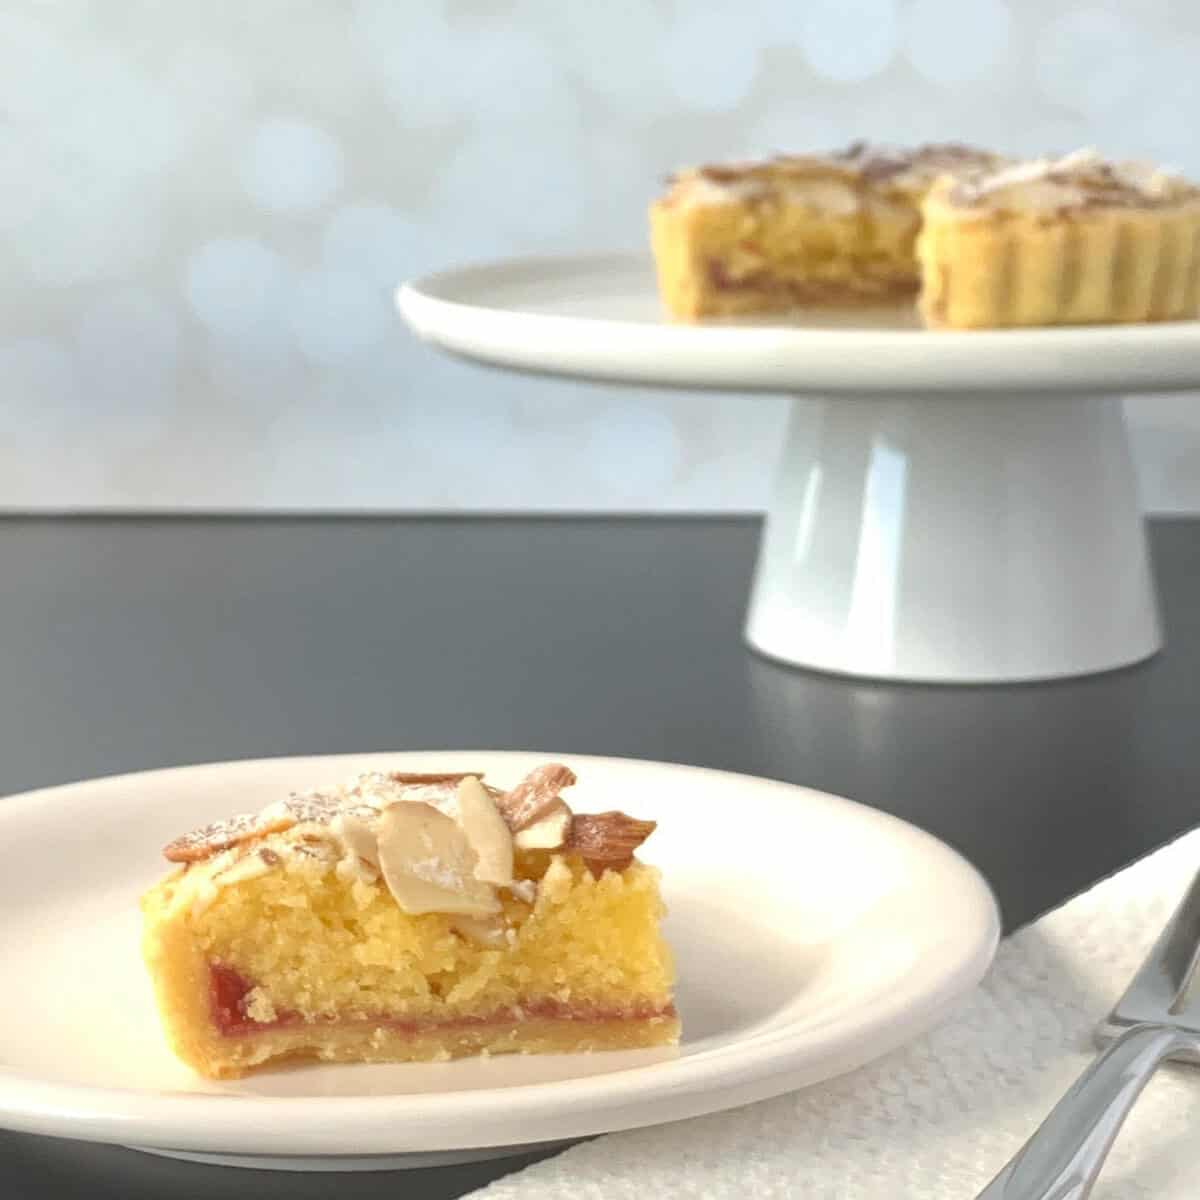 Slice of Bakewell tart on a white plate in front of a sliced tart on a white cakestand.